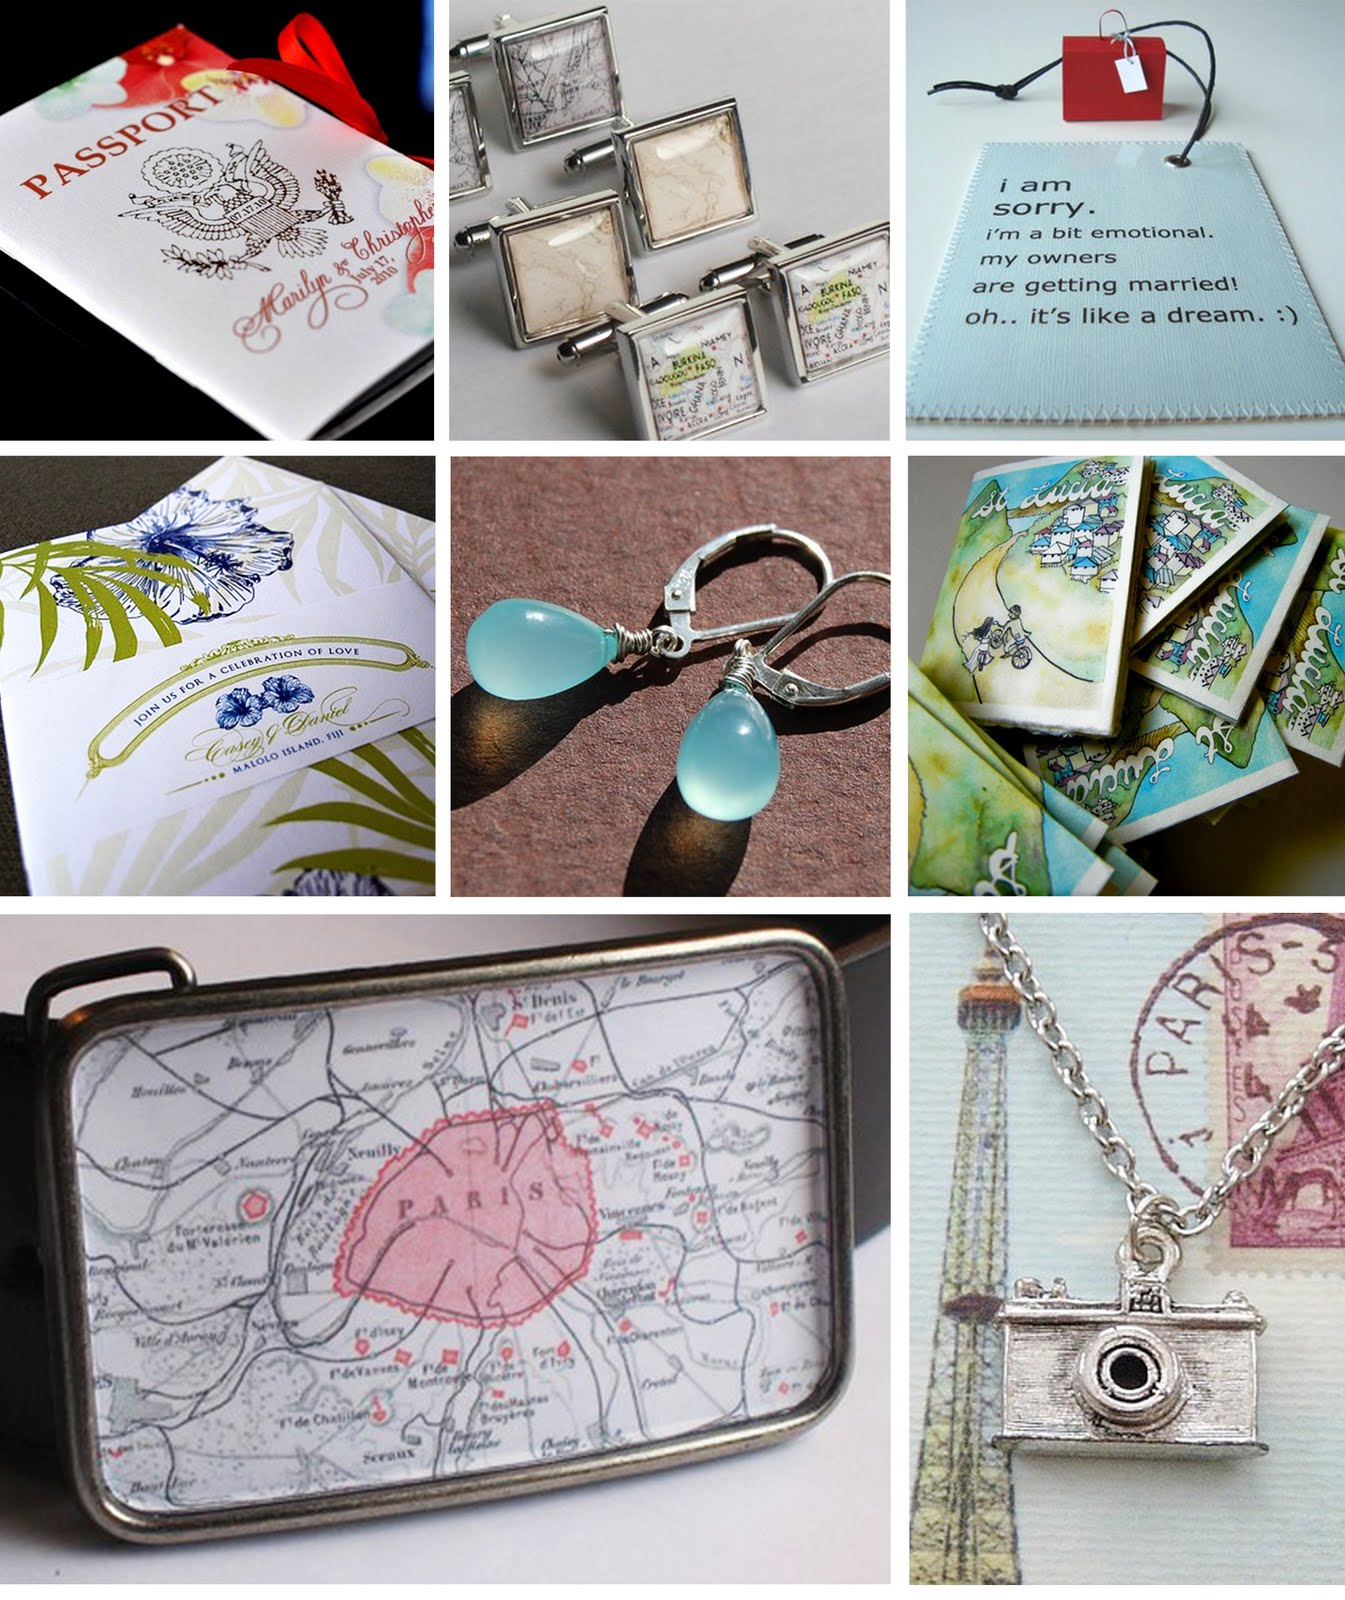 Bridal Party Gift Ideas For Destination Wedding : items for a destination wedding. Gifts for your bridal party ...